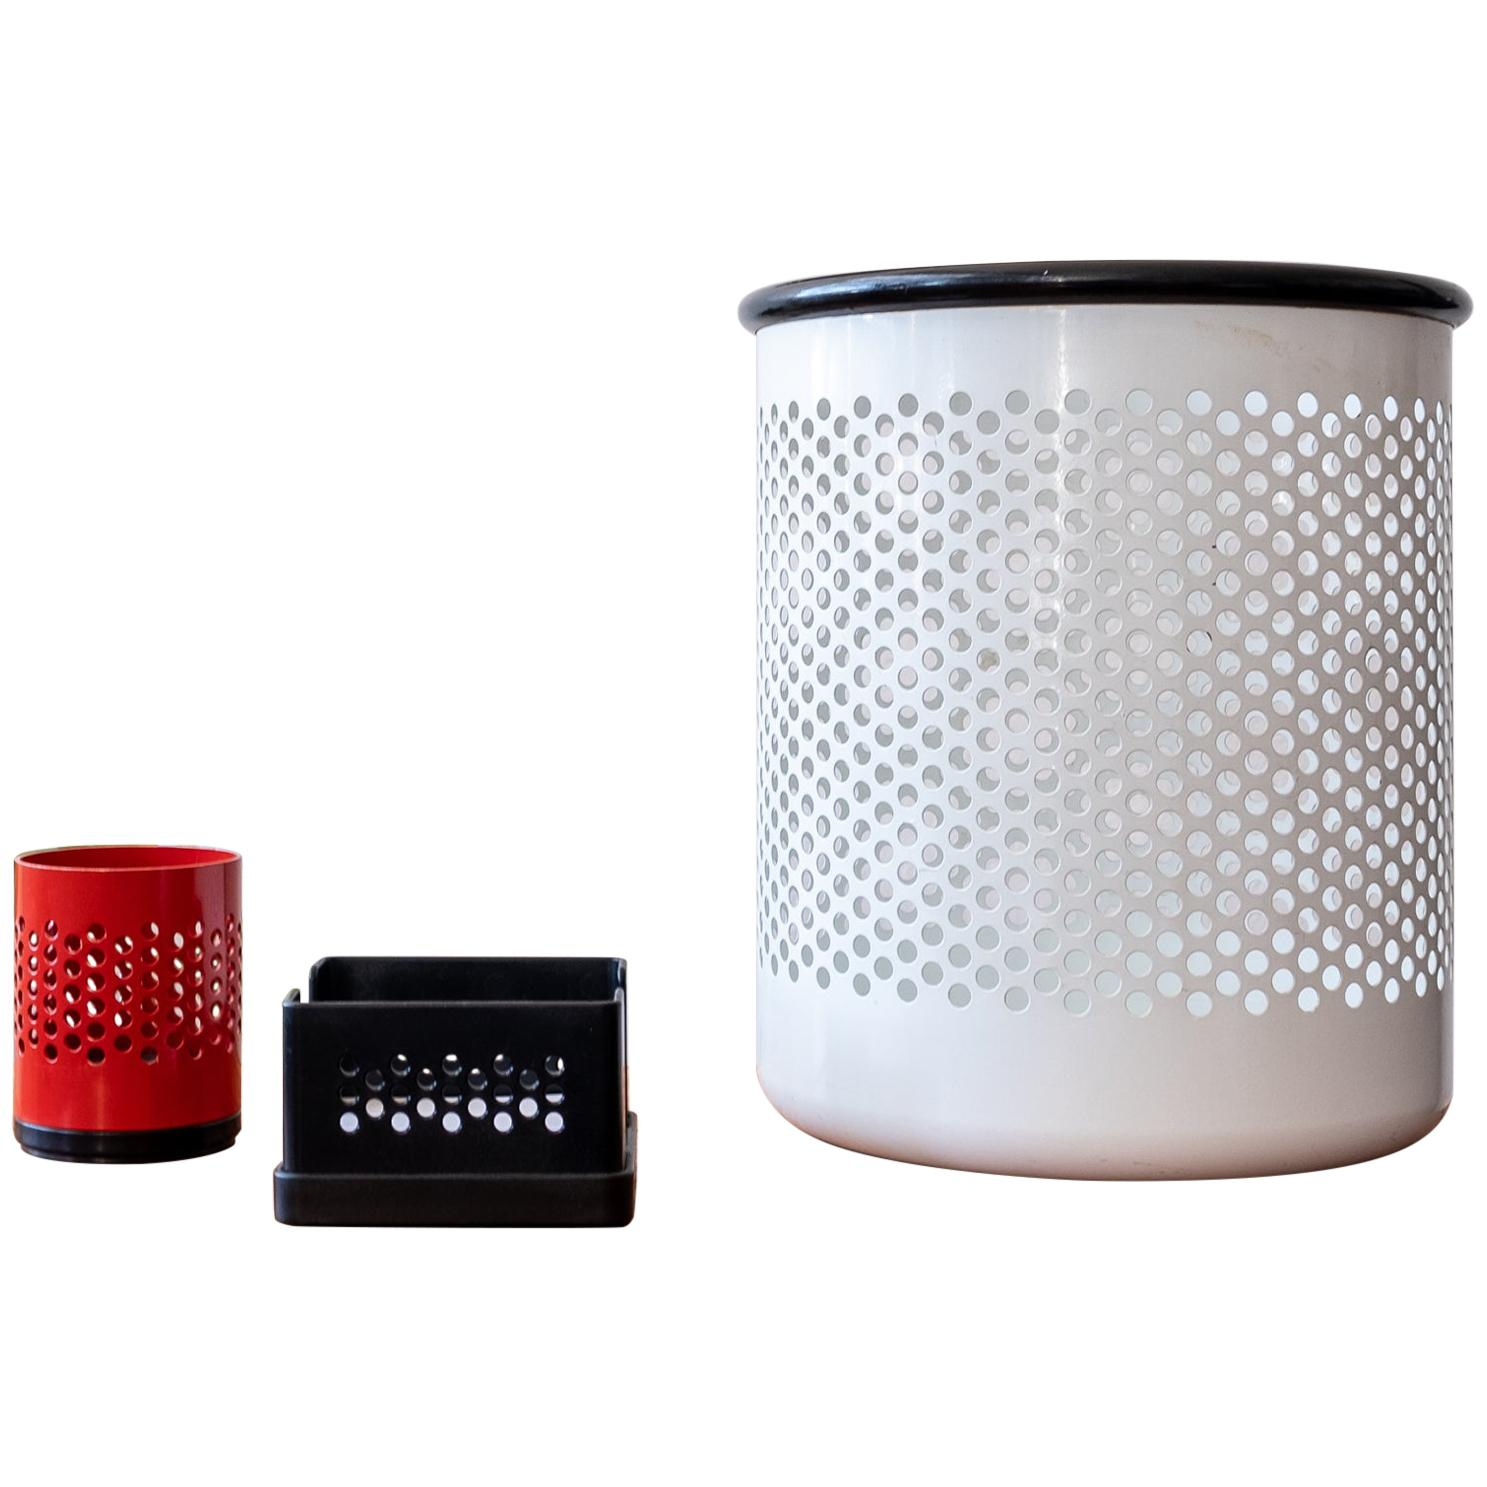 Postmodern Perforated Desk Set by Barbieri & Marianelli for Rexite